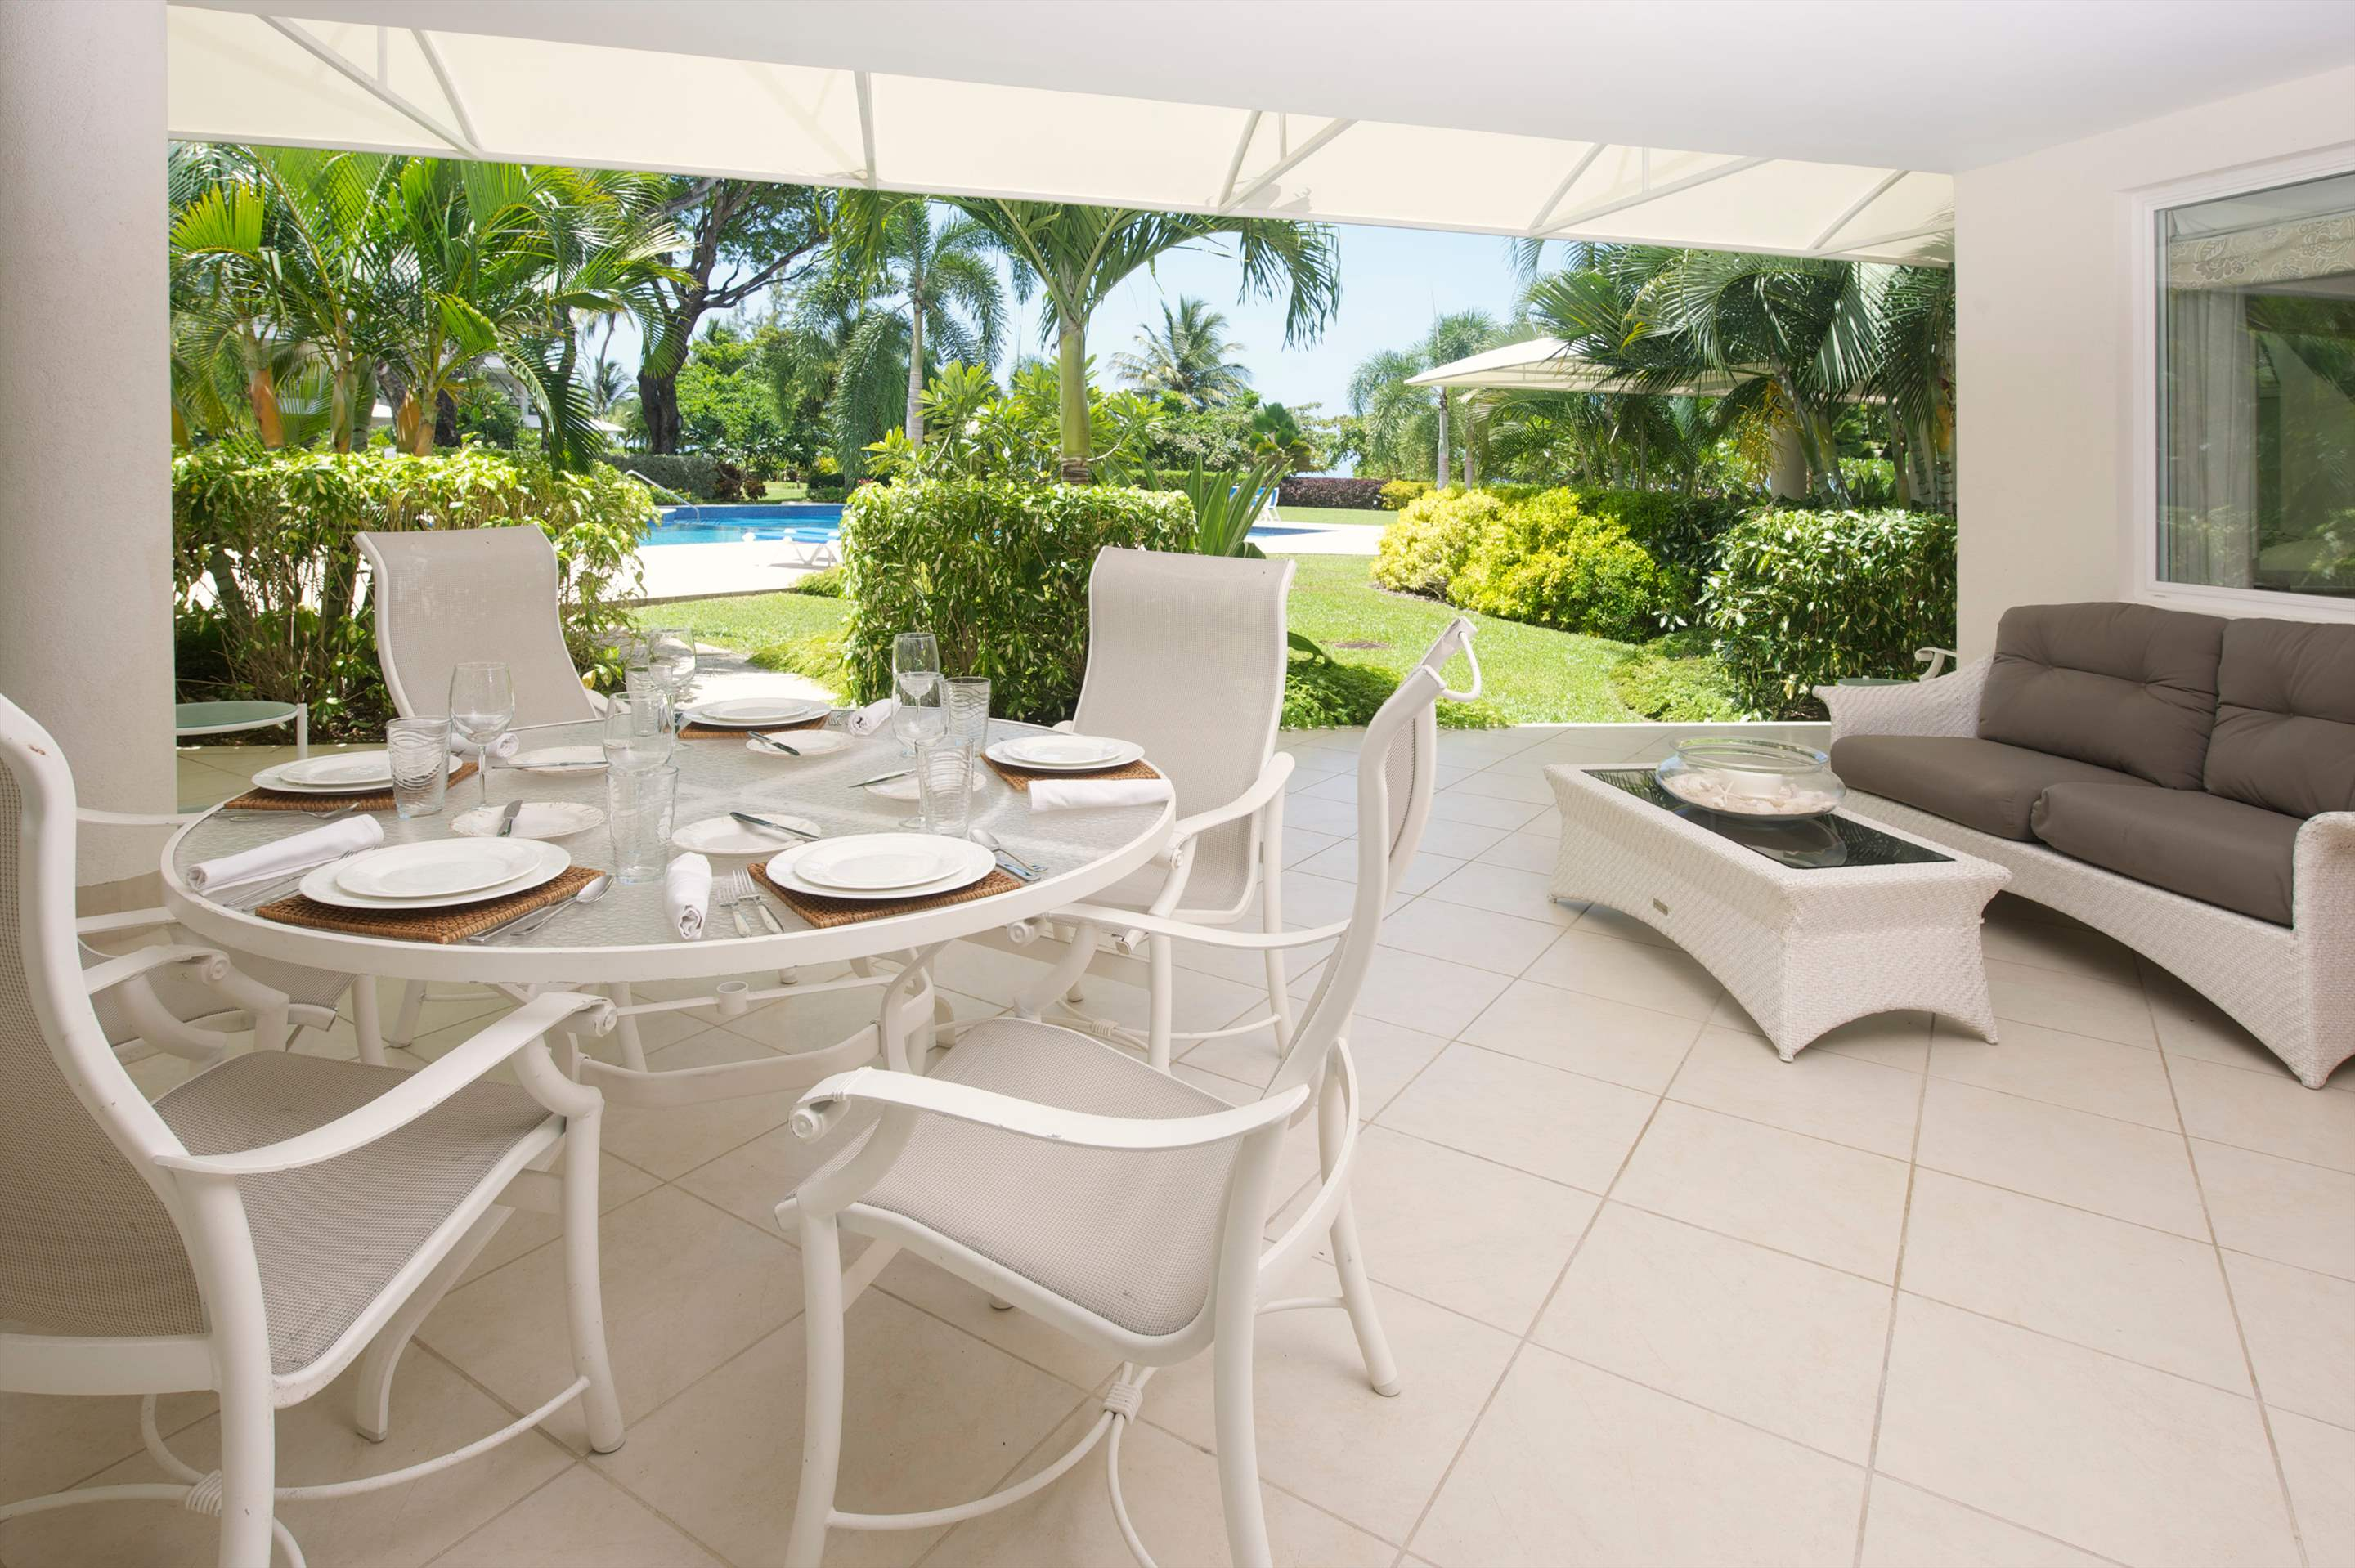 Palm Beach 110, 3 bedroom apartment in St. Lawrence Gap & South Coast, Barbados Photo #12